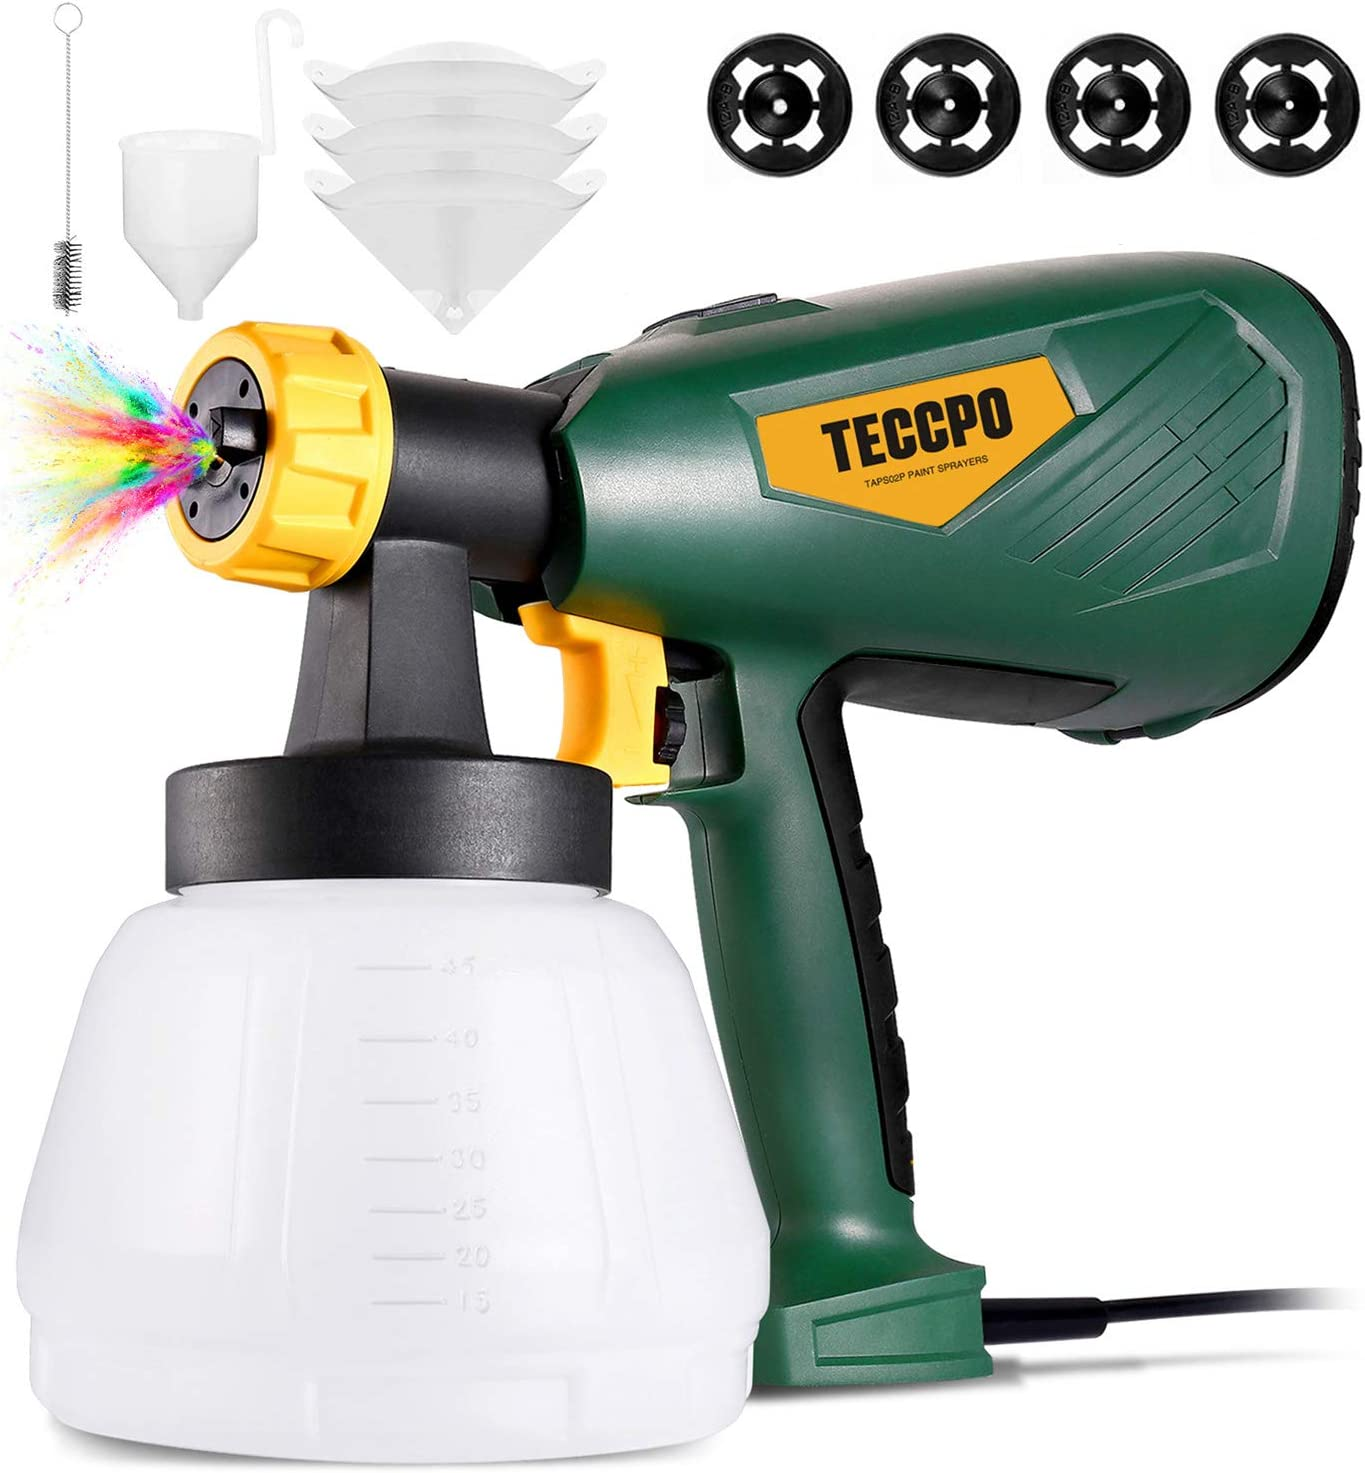 TECCPO Paint Sprayer 600W 1300ml Container Electric Limited Special Price Spra HVLP Denver Mall